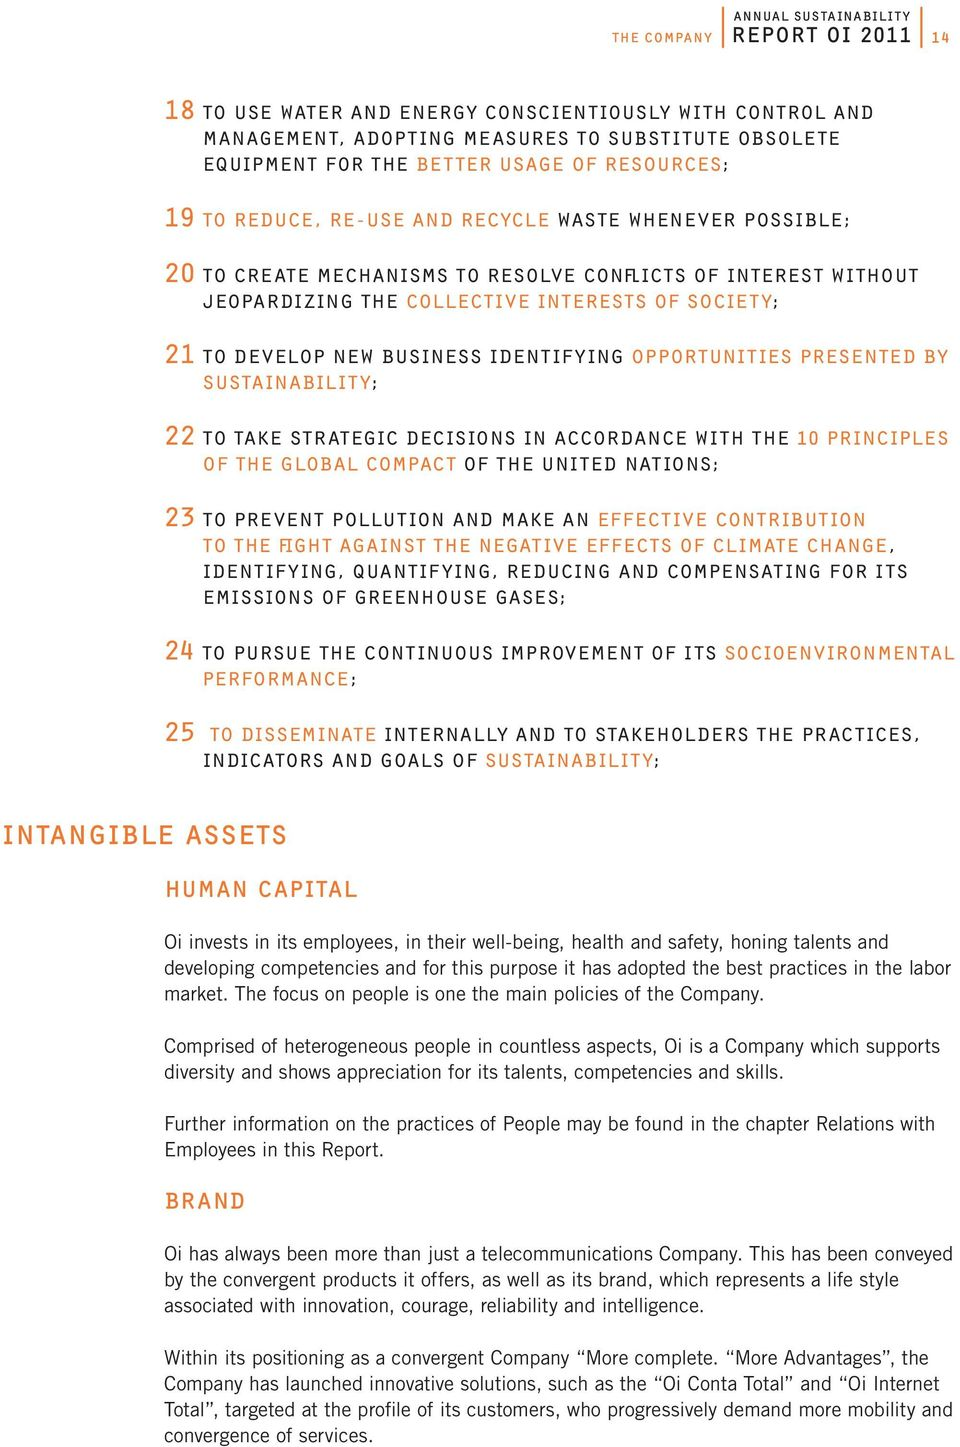 identifying opportunities presented by Sustainability; 22 To take strategic decisions in accordance with the 10 principles of the Global Compact of the United Nations; 23 To prevent pollution and